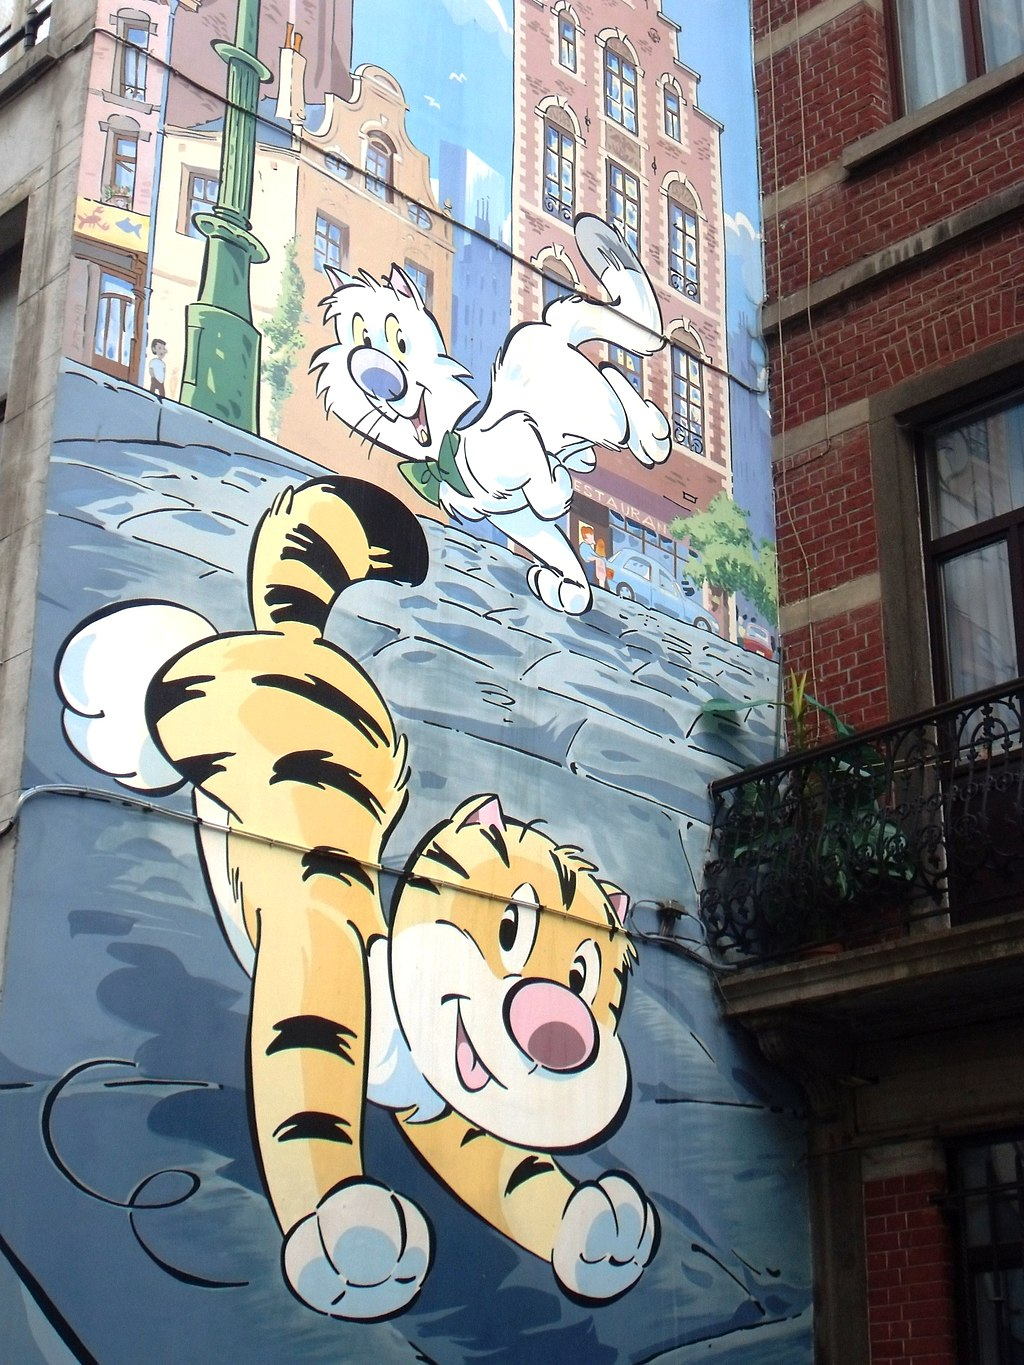 Camic Wall in Brussels with cat and dog